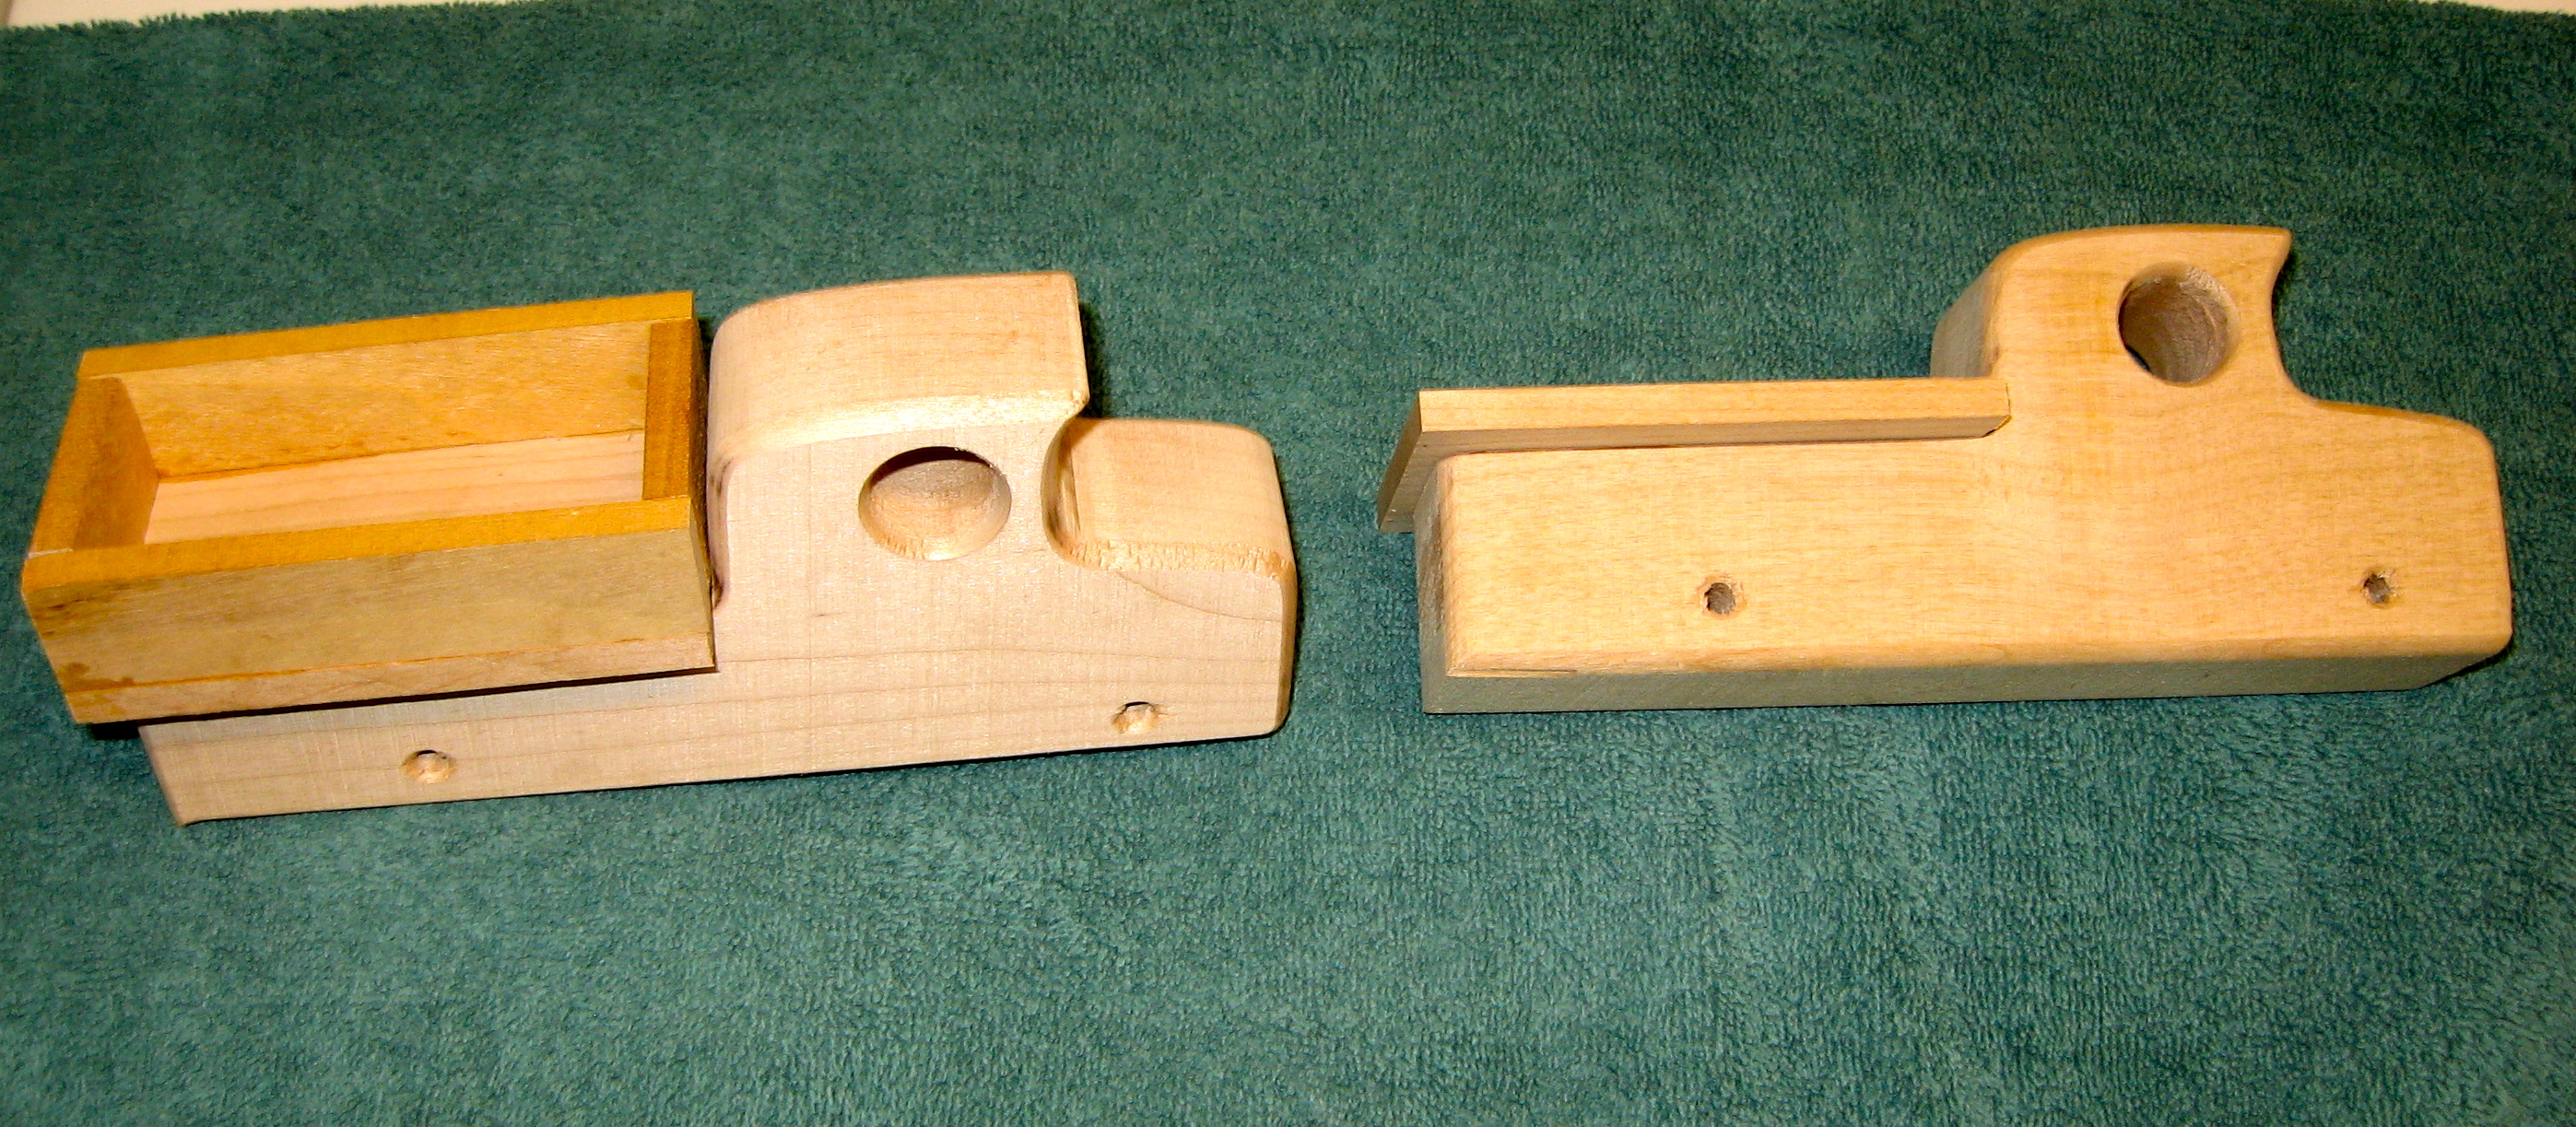 Making Wooden Toy Cars For Charity - Made by Alan